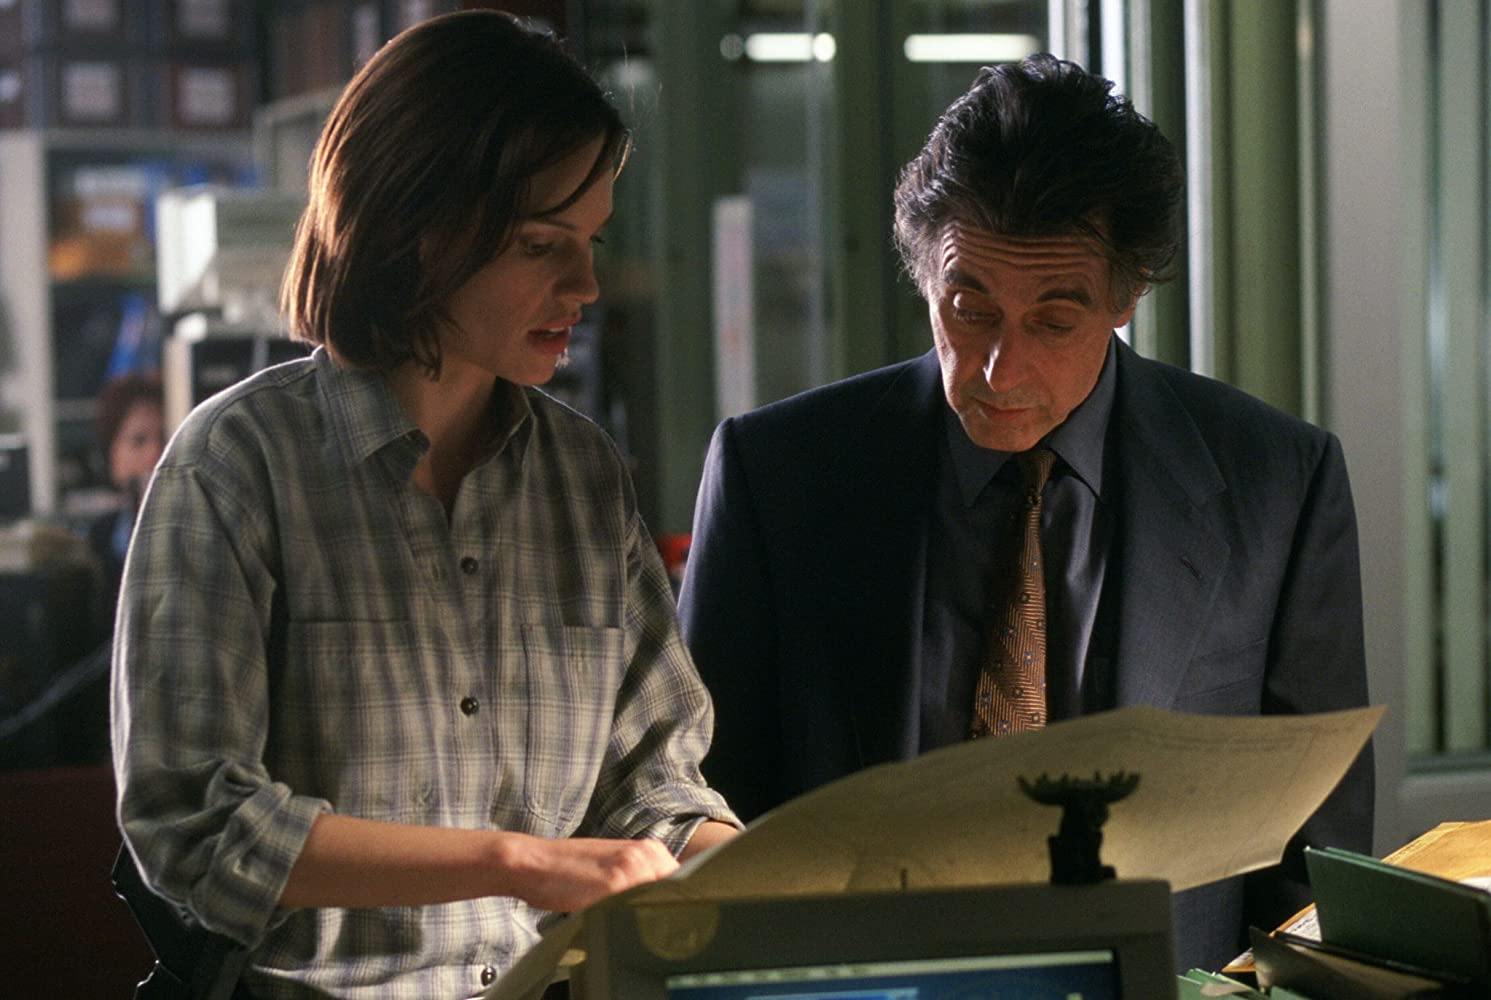 Al Pacino and Hilary Swank in Insomnia (2002)